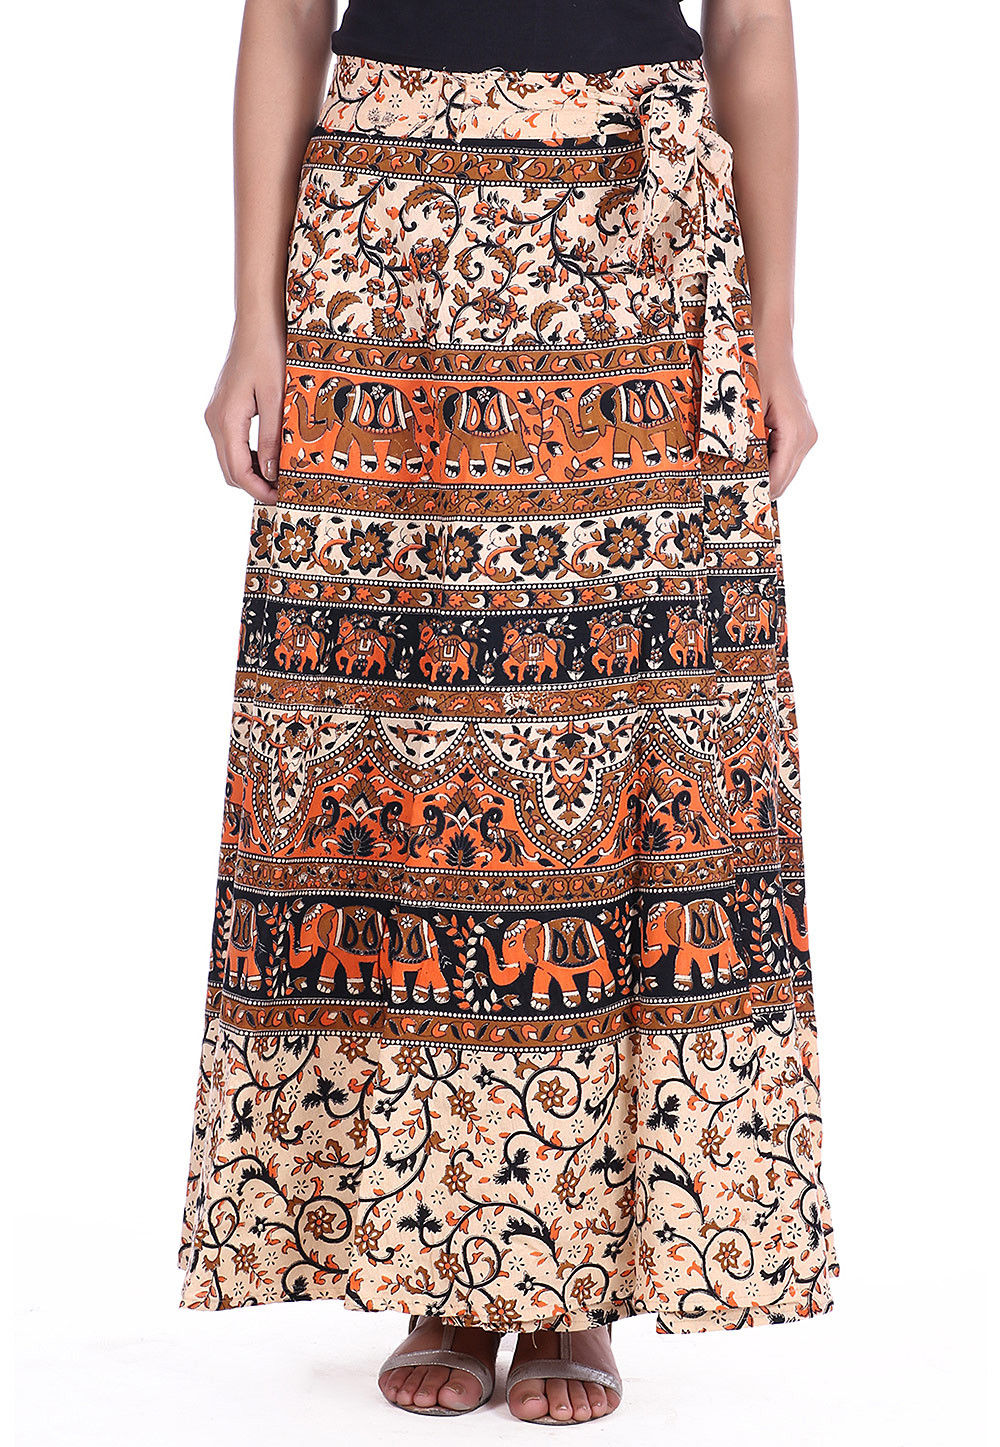 Bagru Cotton Wrap Around Skirt in Cream and Multicolor